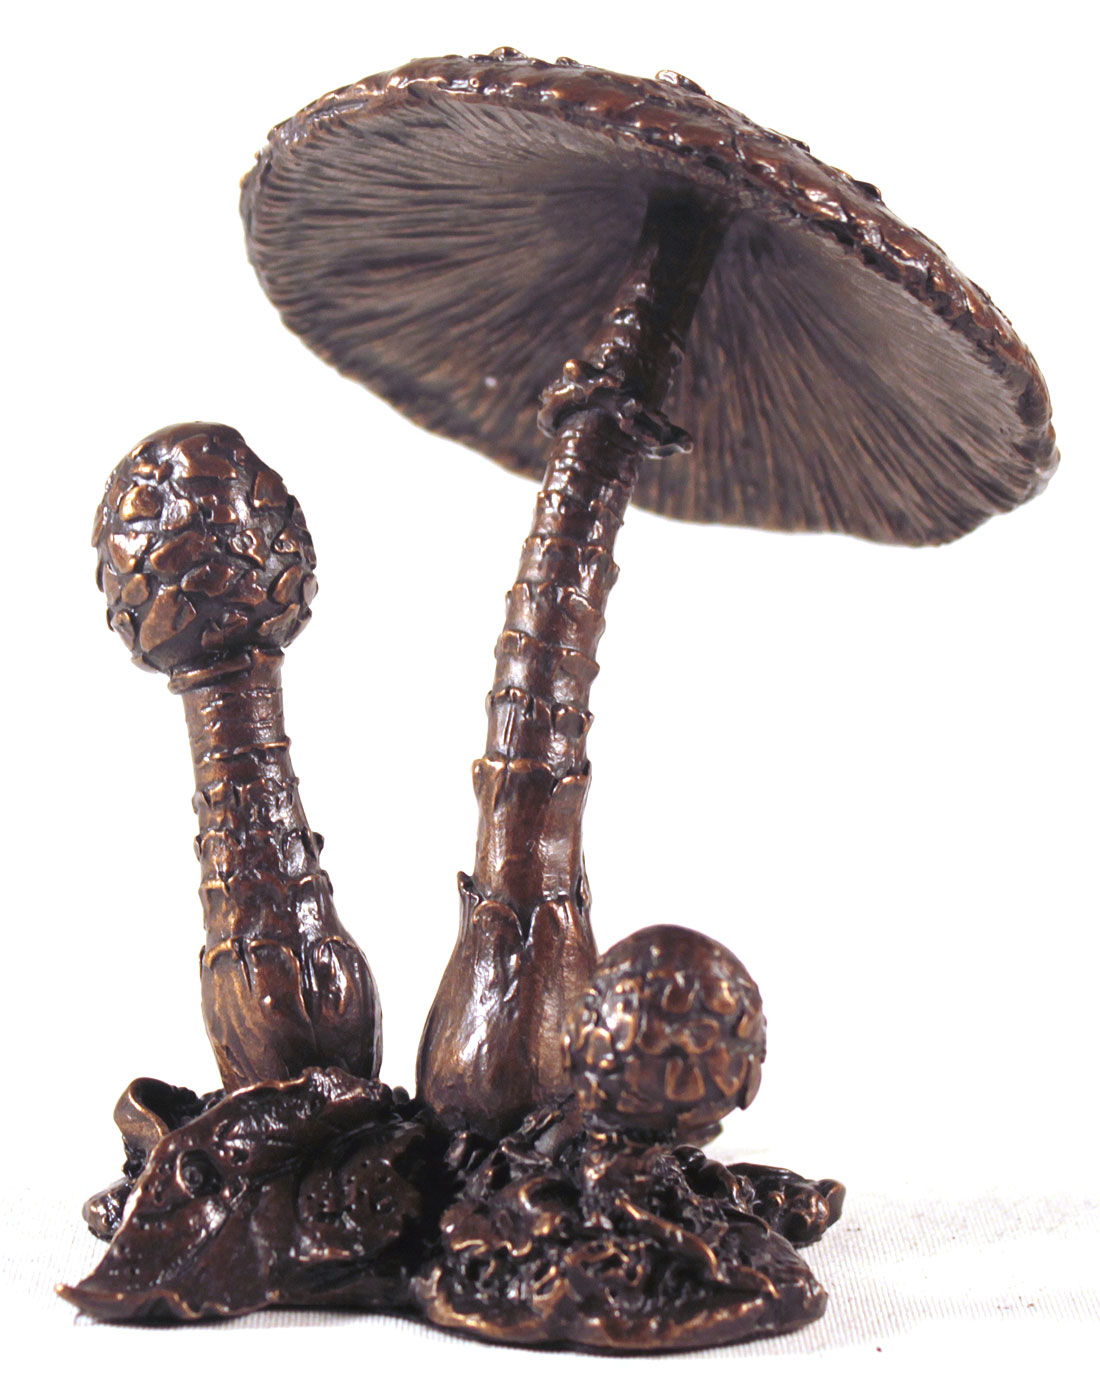 Keith Sherwin, Bronze, Parasol Mushroom. Click to enlarge